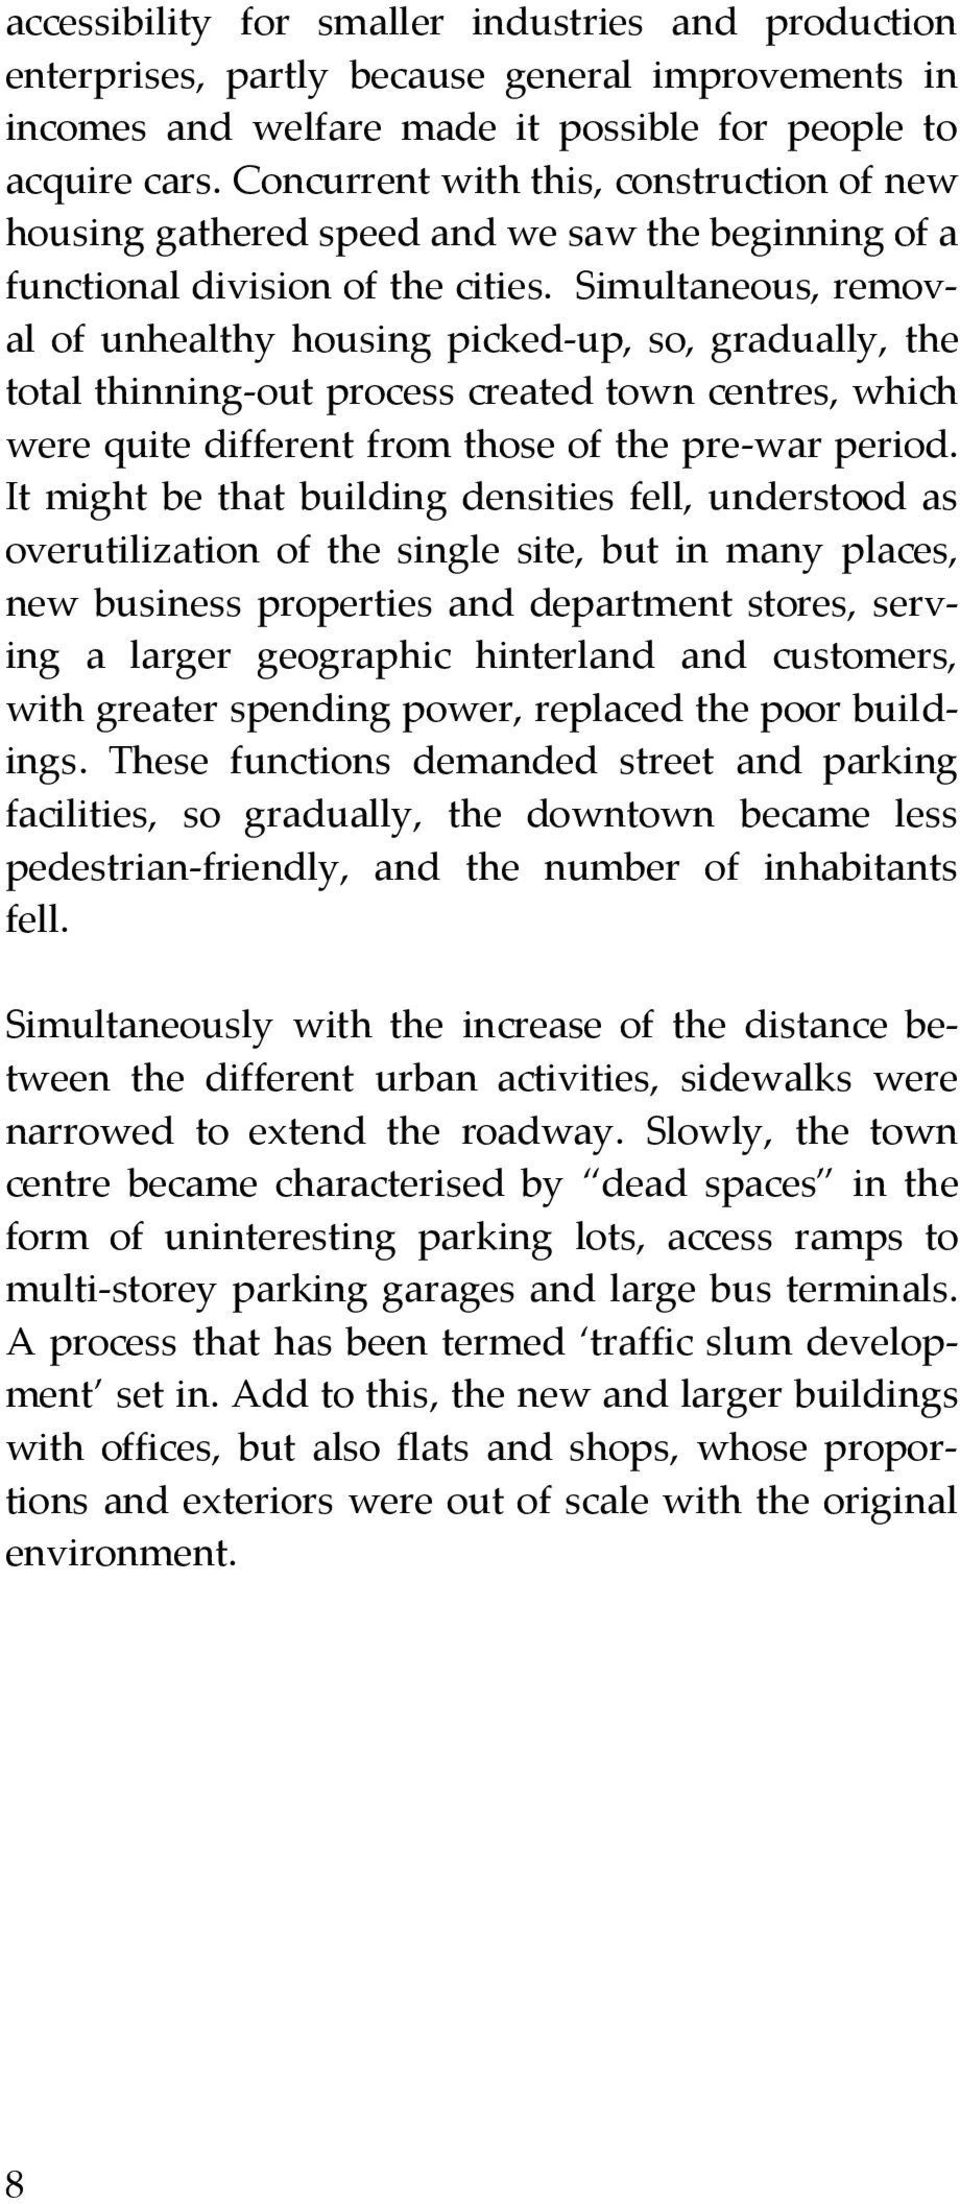 Simultaneous, removal of unhealthy housing picked-up, so, gradually, the total thinning-out process created town centres, which were quite different from those of the pre-war period.